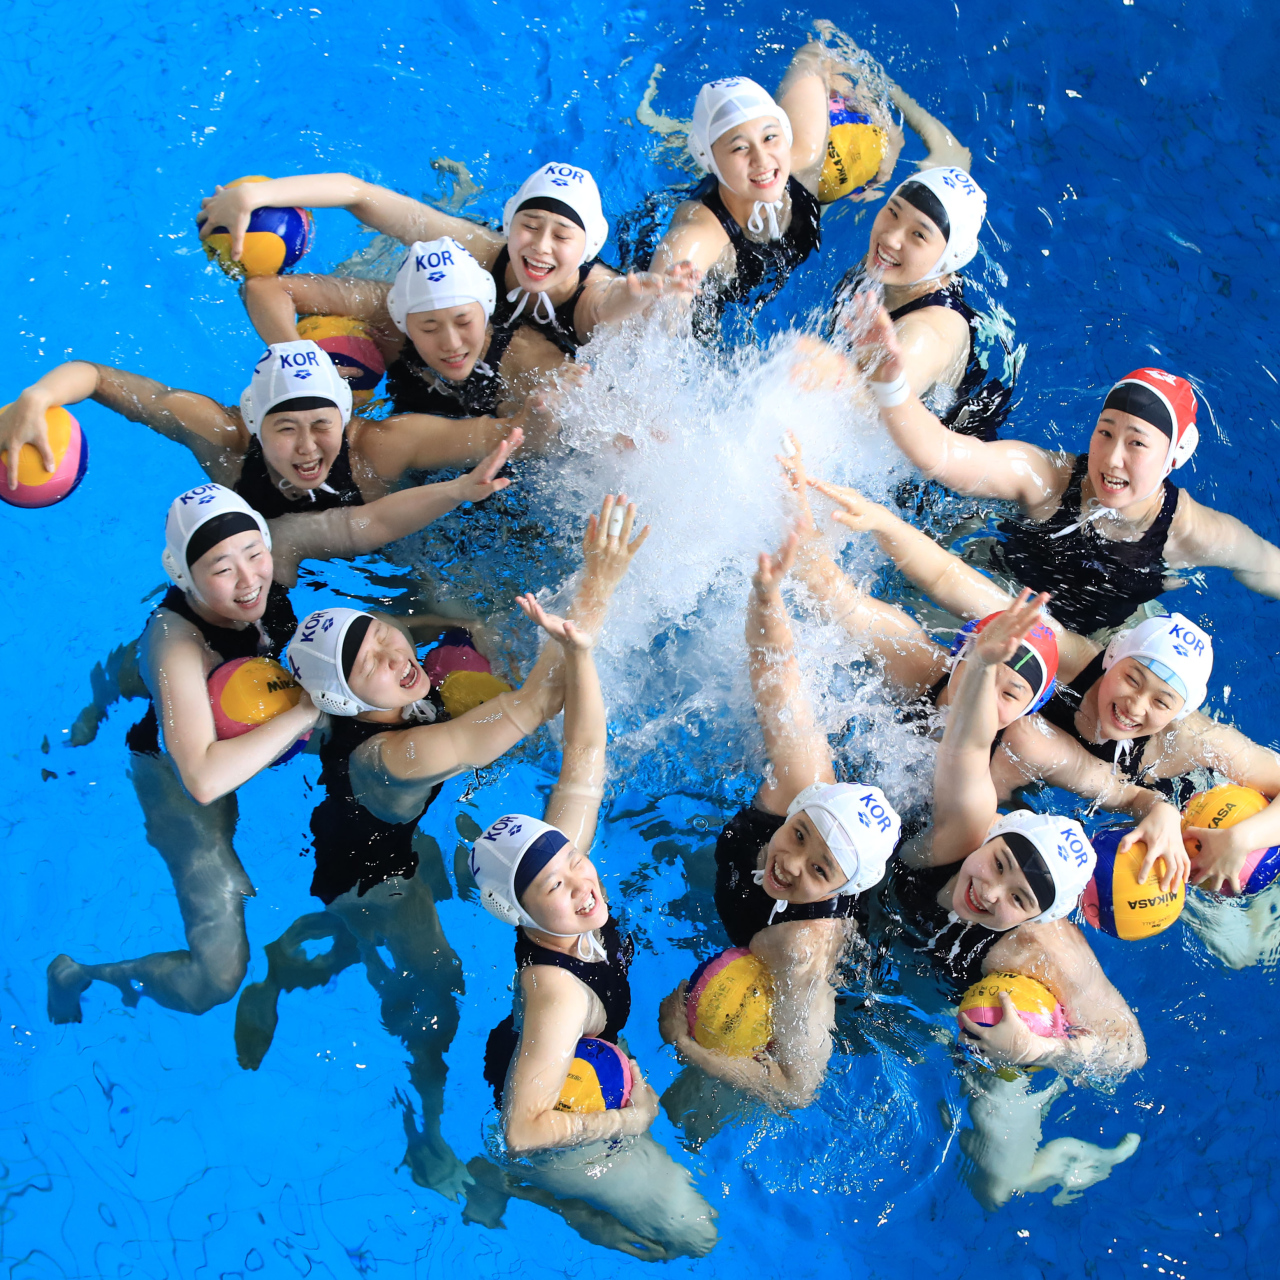 South Korean women's water polo players pose for a photo before training at a pool on June 27 ahead of the 2019 FINA World Aquatics Championships in Gwangju. (Yonhap)